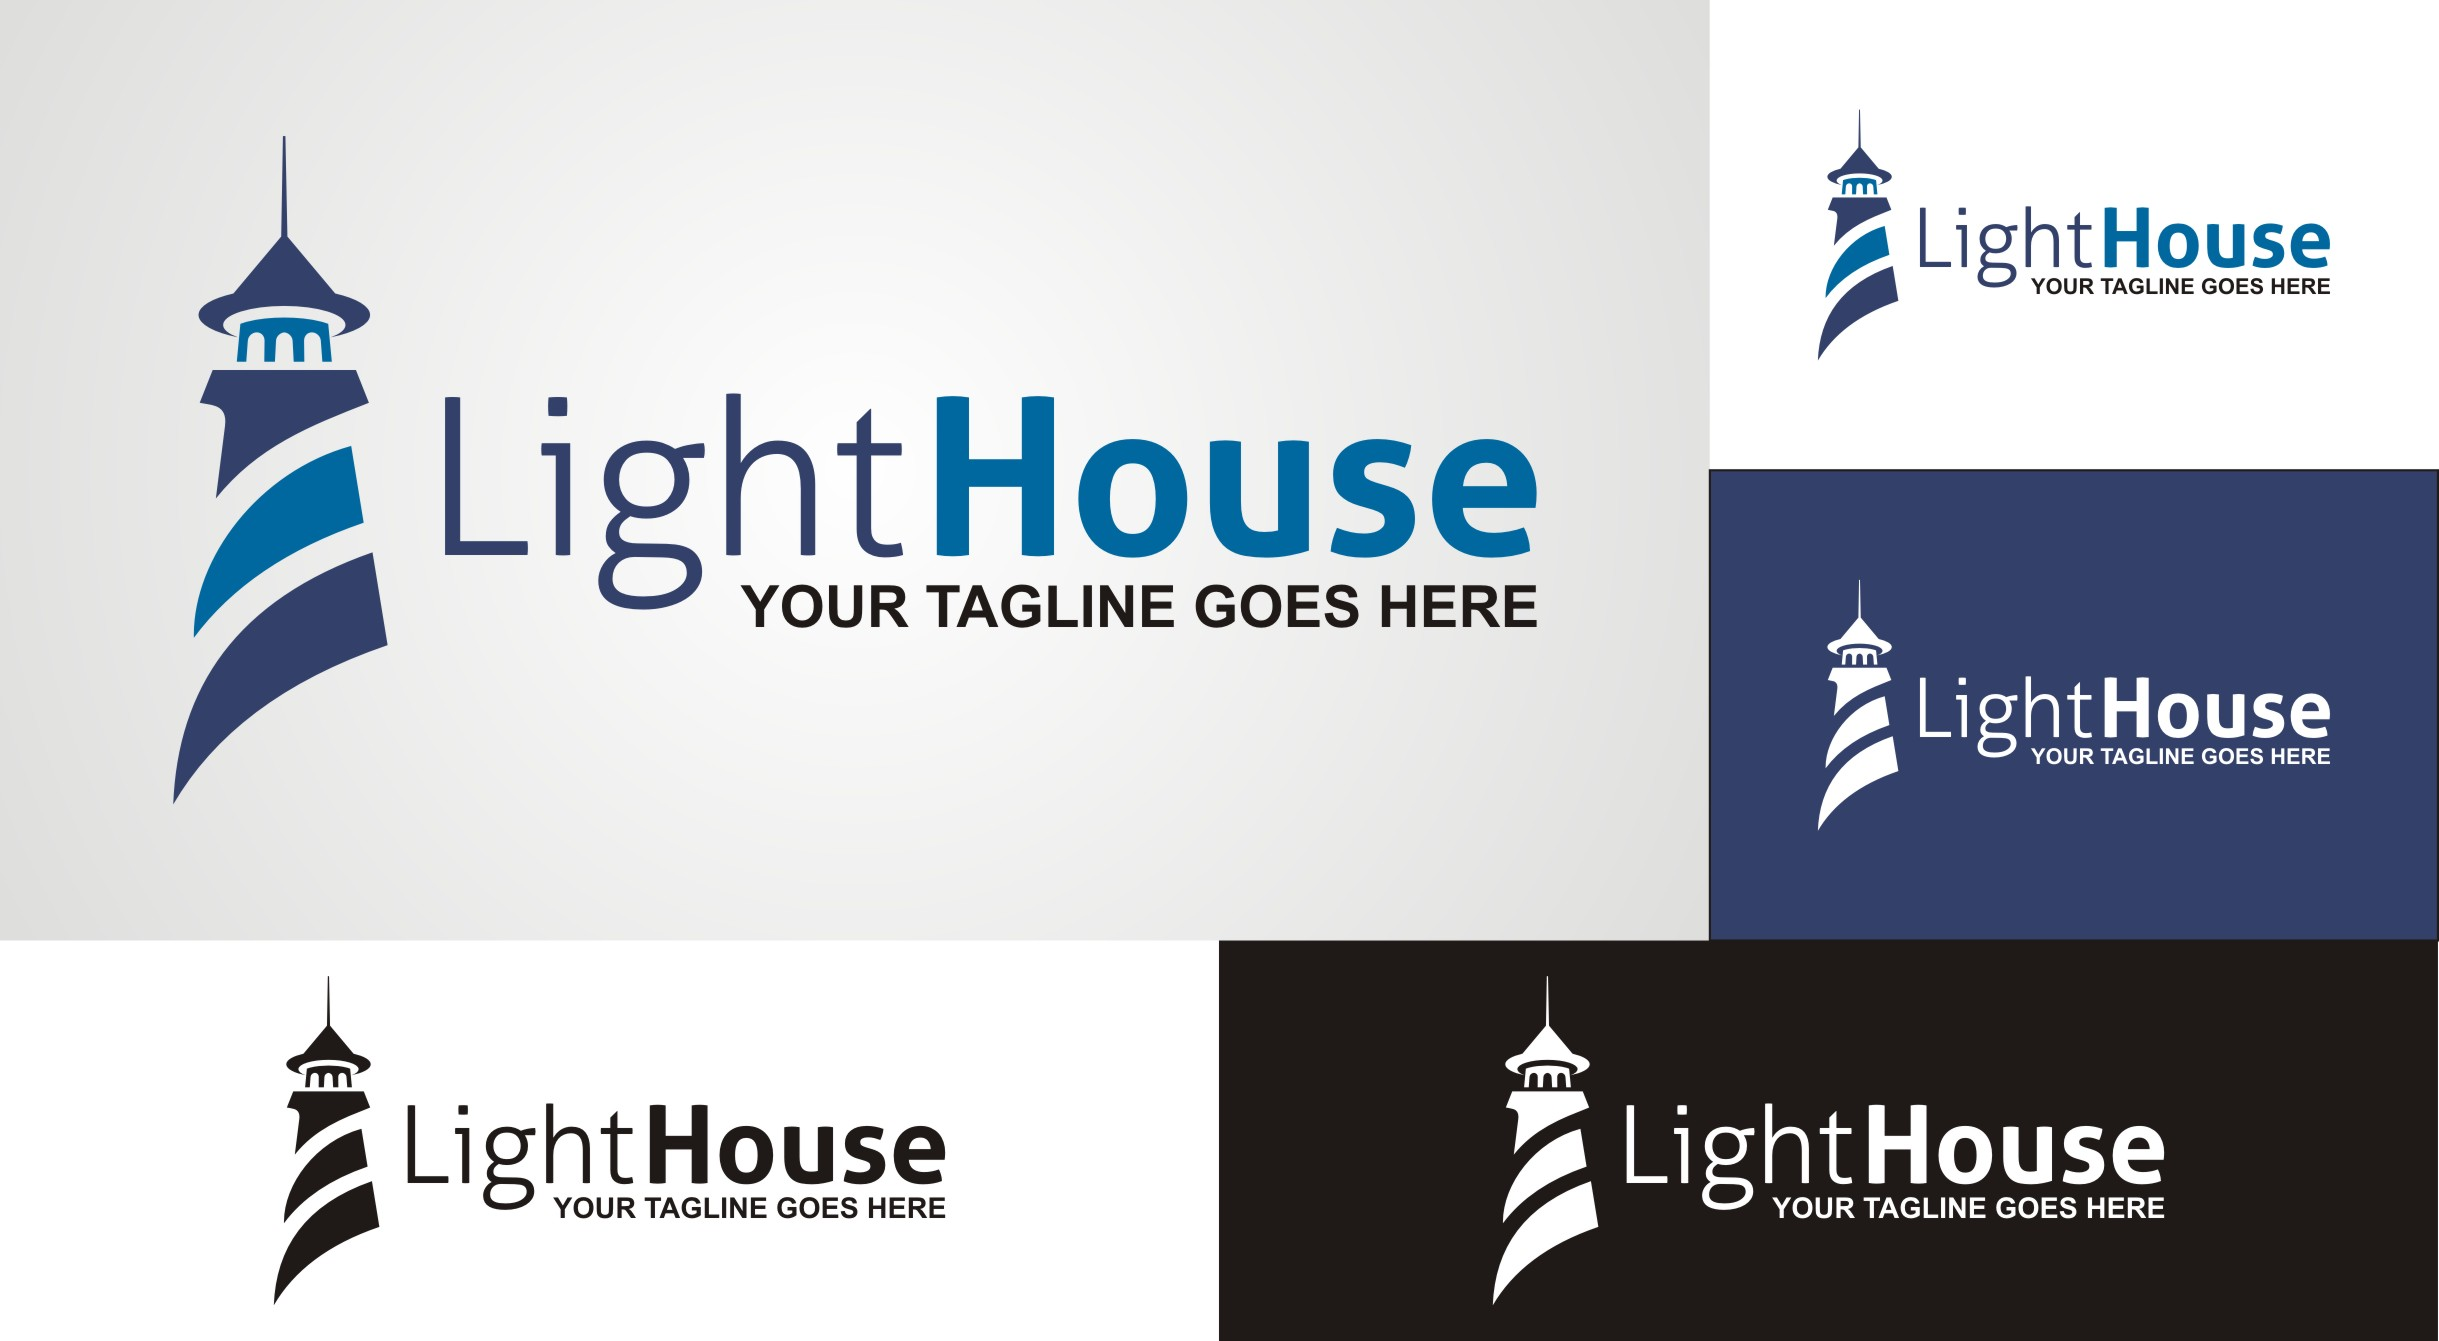 Lighthouse - logo - Logos & Graphics